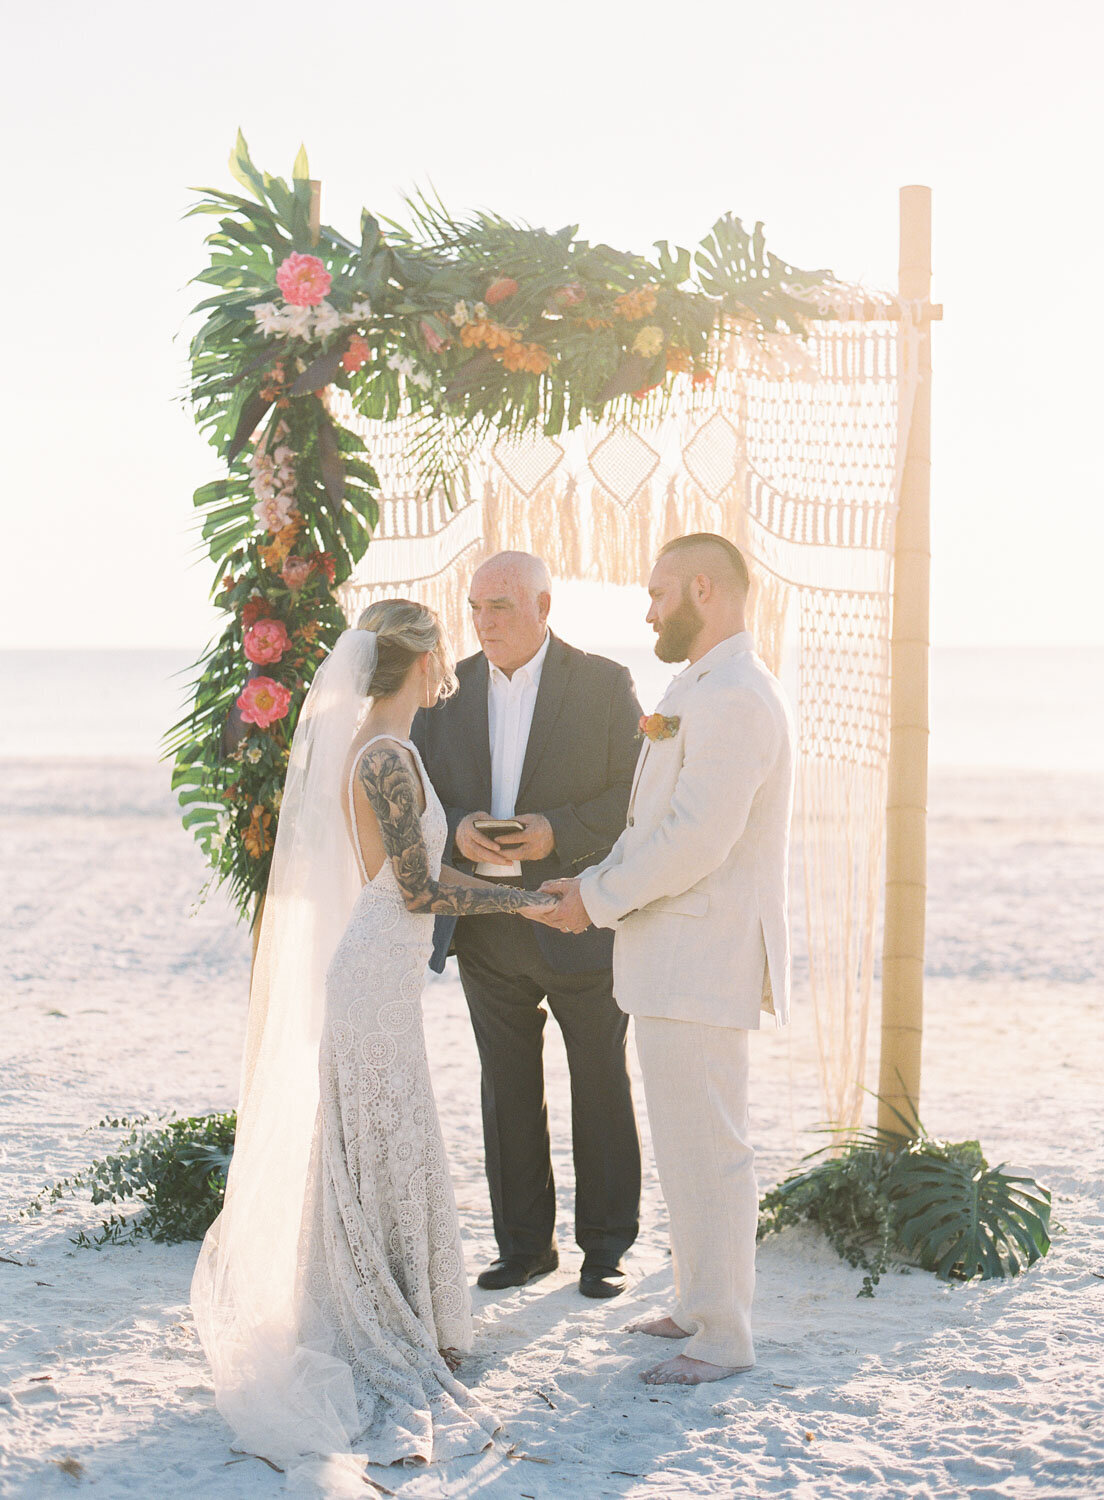 elegant-bohemian-tropical-december-destination-wedding-melanie-gabrielle-photography-martha-stewart-submission-009